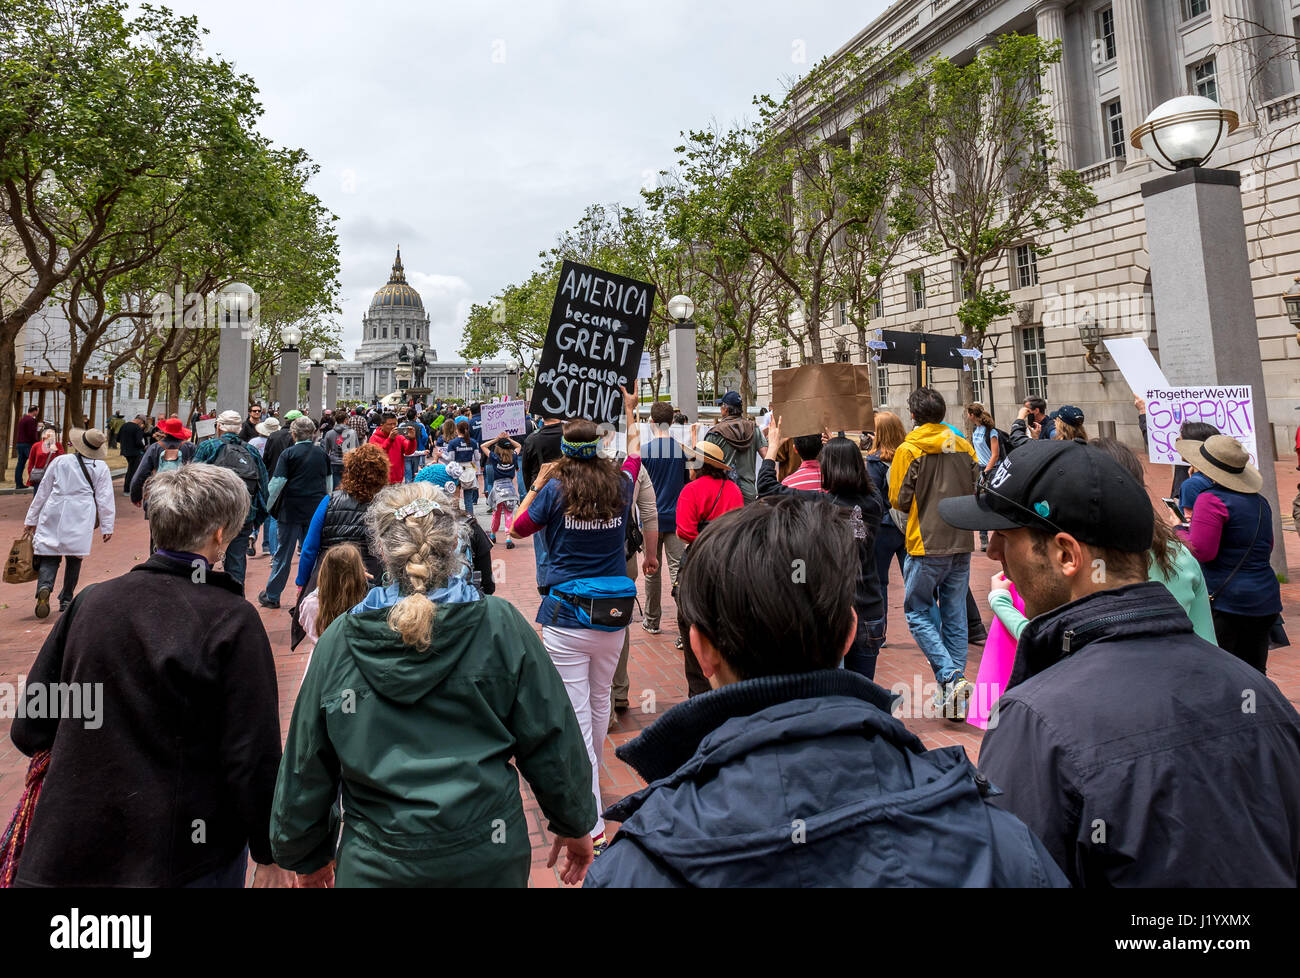 San Francisco, California, USA. 22nd April, 2017. Earth Day marchers approach San Francisco City Hall and the Civic - Stock Image